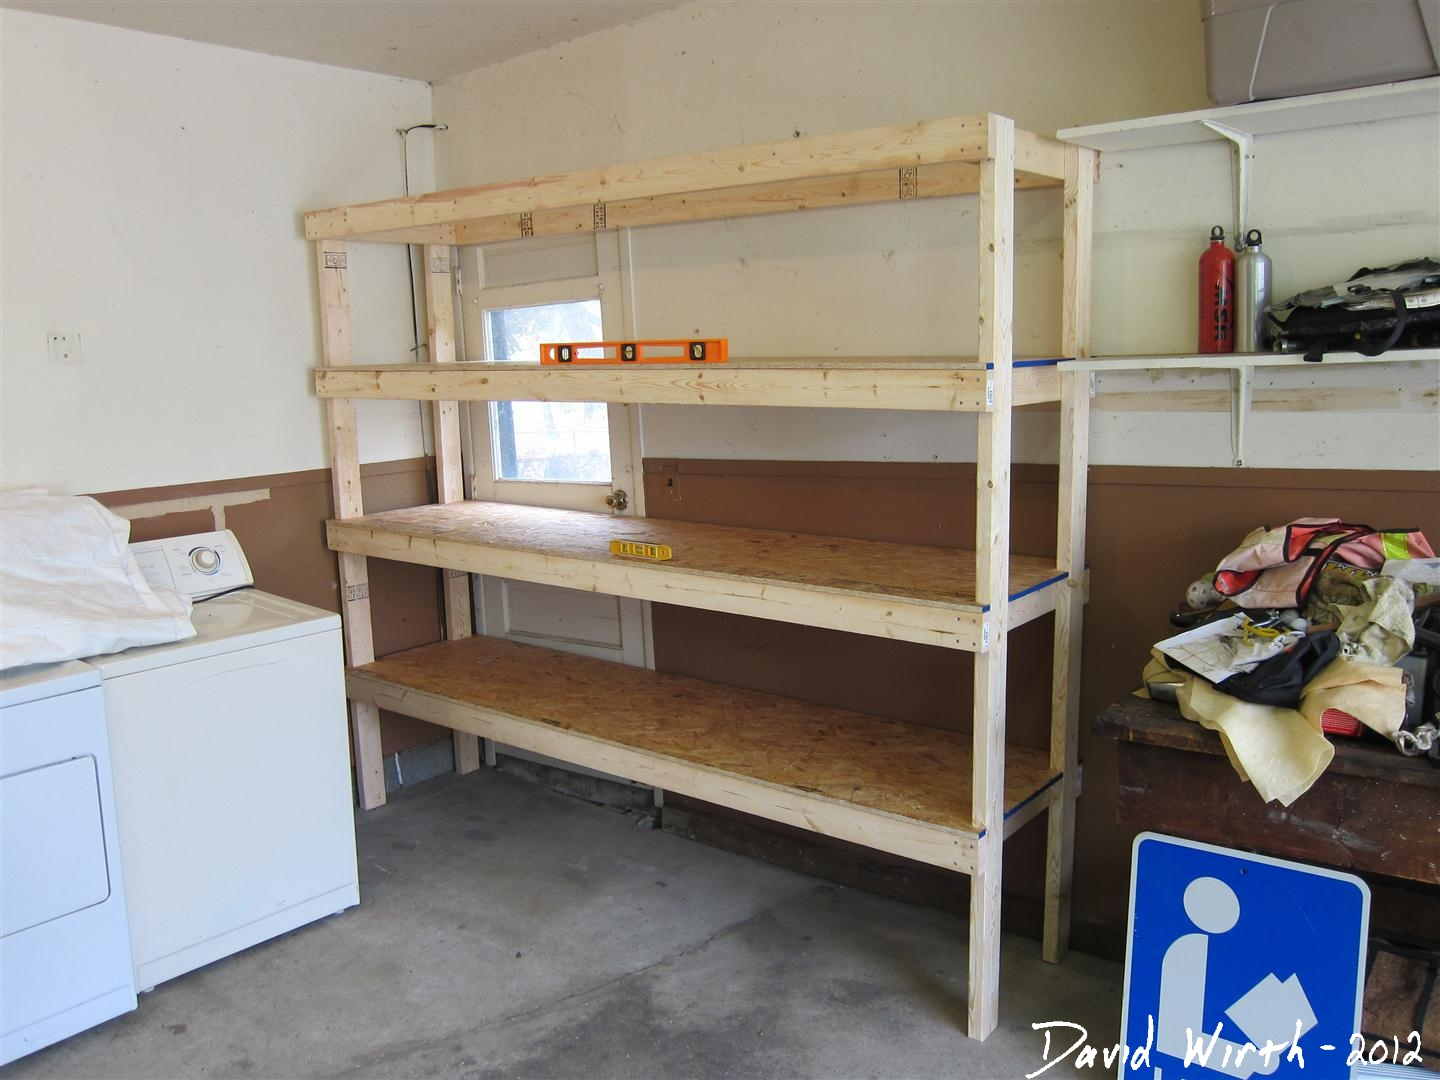 How to Build Garage Shelves 1440 x 1080